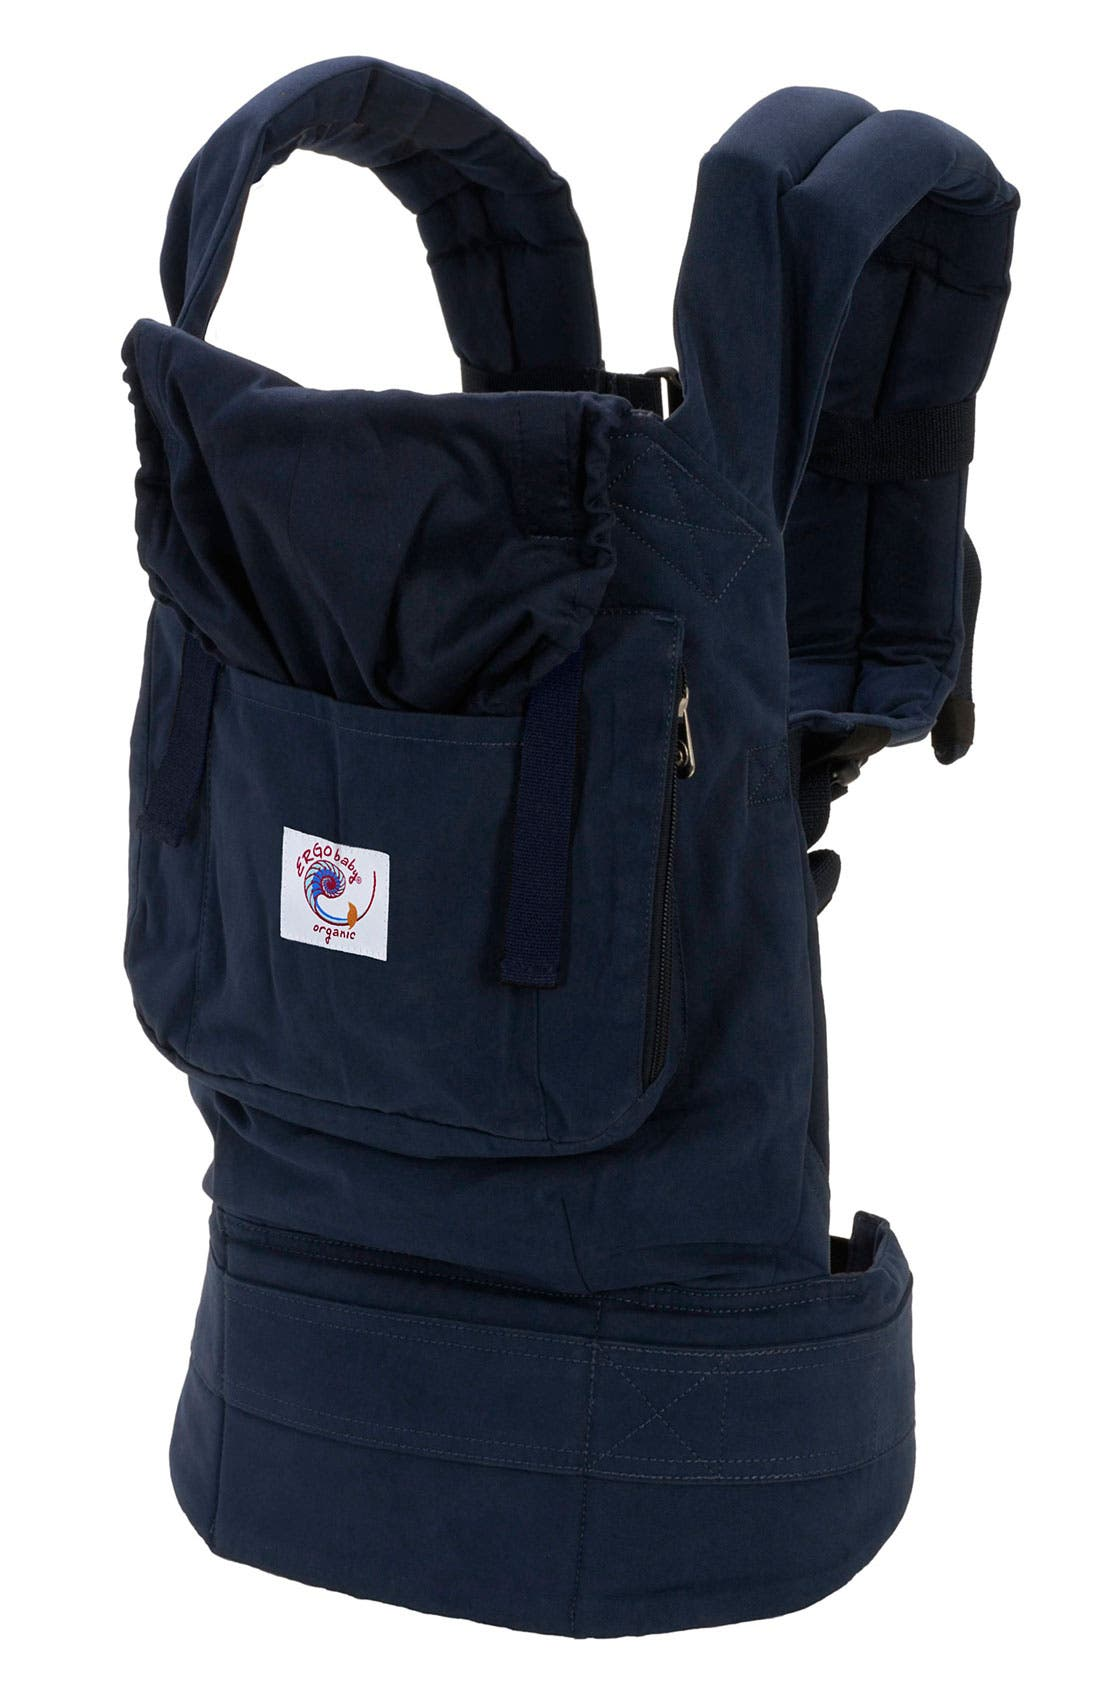 Main Image - ERGObaby Baby Carrier